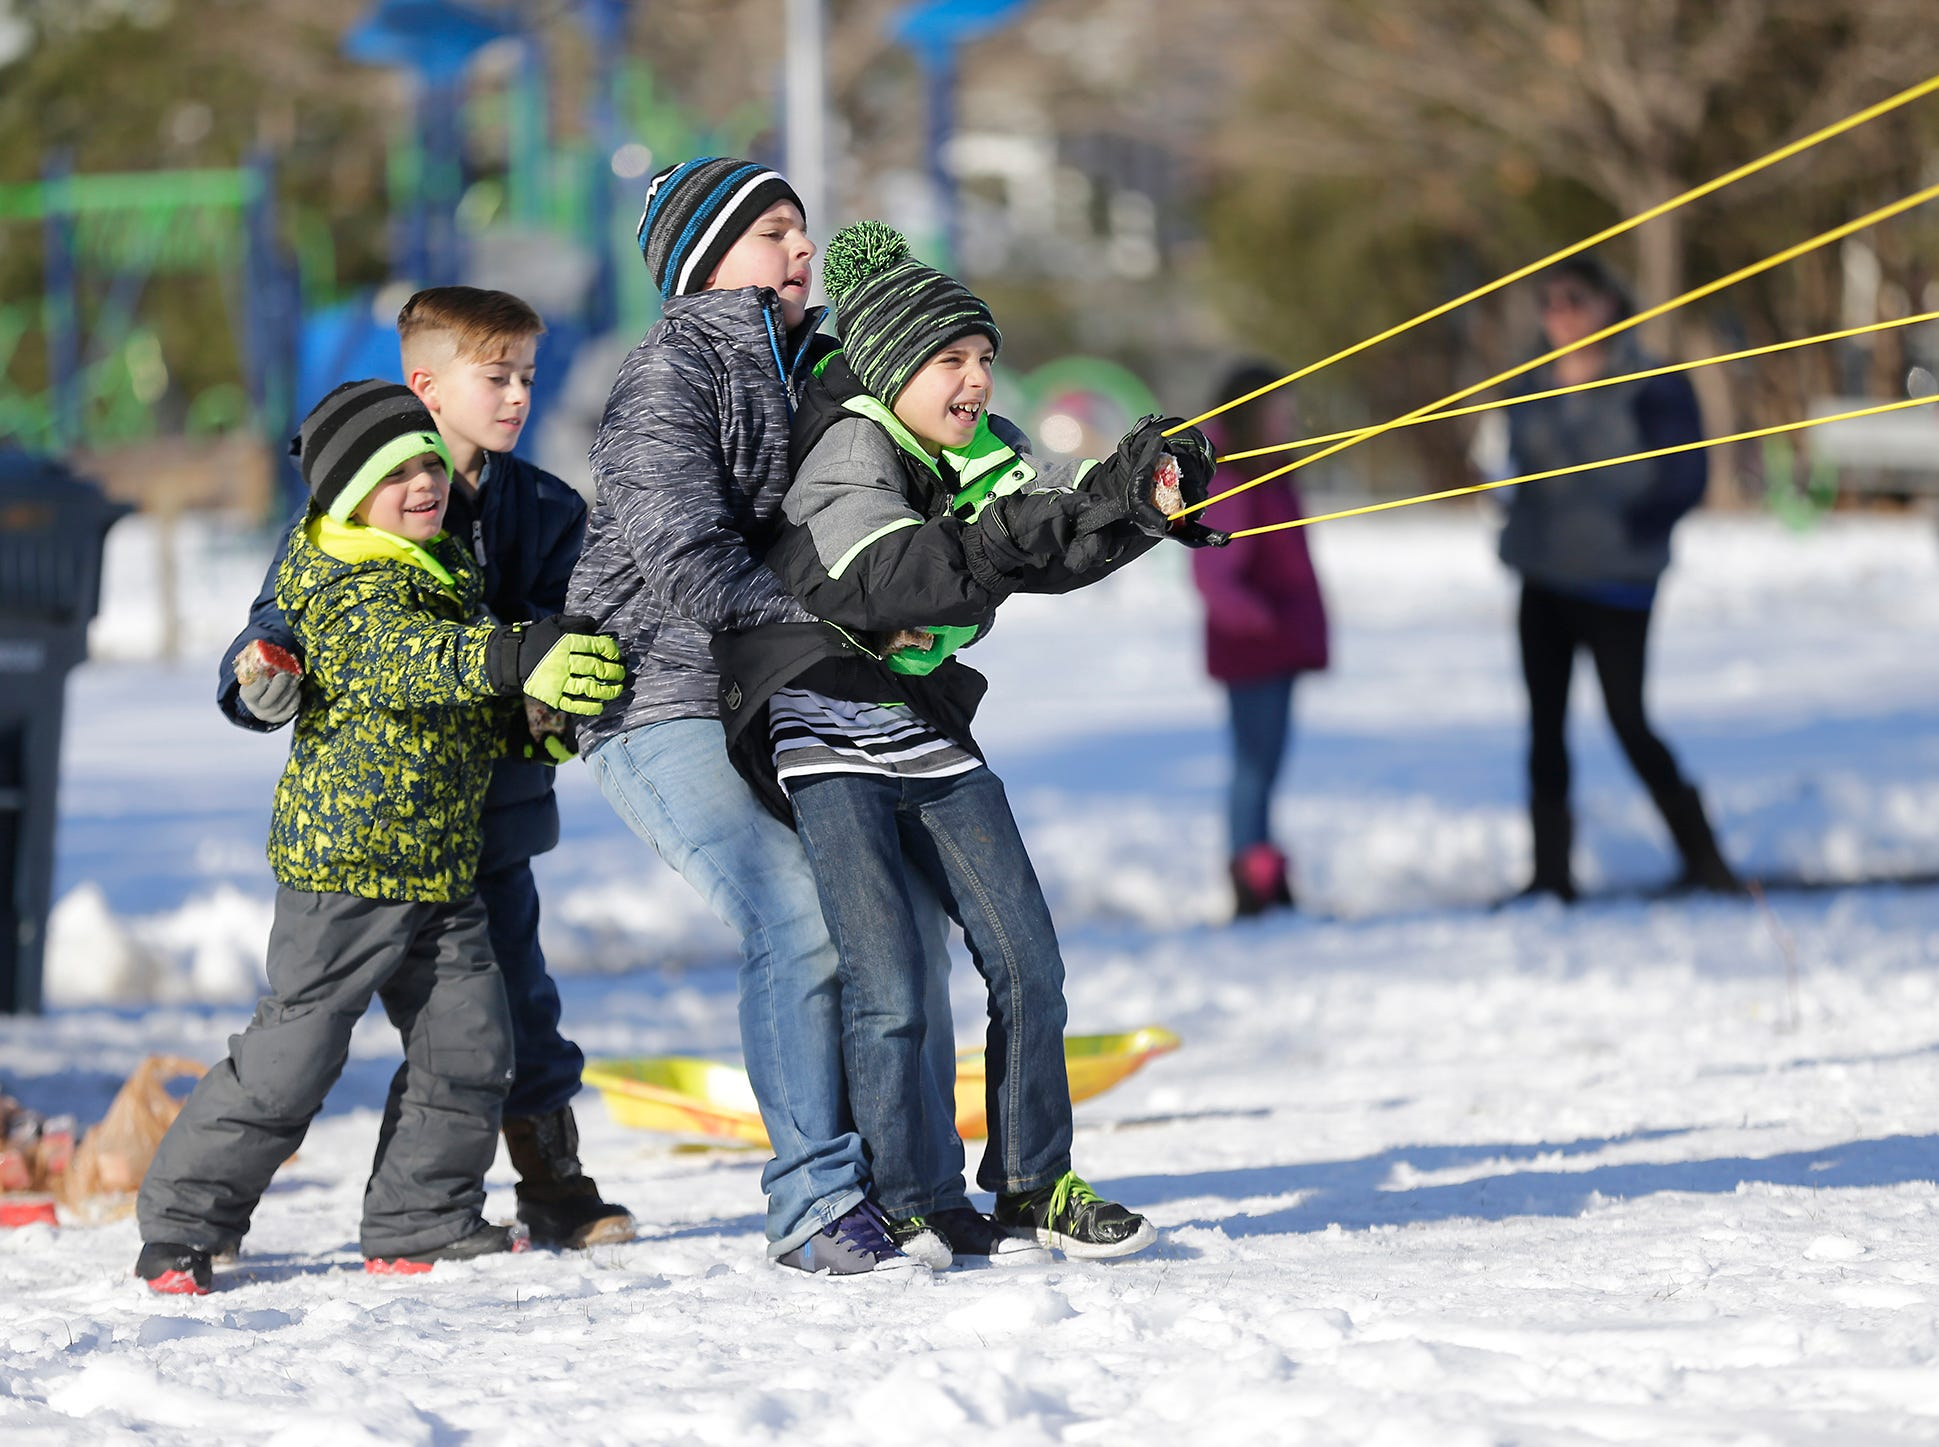 Chase Hafermann, Jacob Christenson and Dayton and Dylan Shady all help to pull back the fruit cake launcher at Winterfest Saturday, January 5, 2019 at Hamilton park in Fond du Lac, Wisconsin. Doug Raflik/USA TODAY NETWORK-Wisconsin